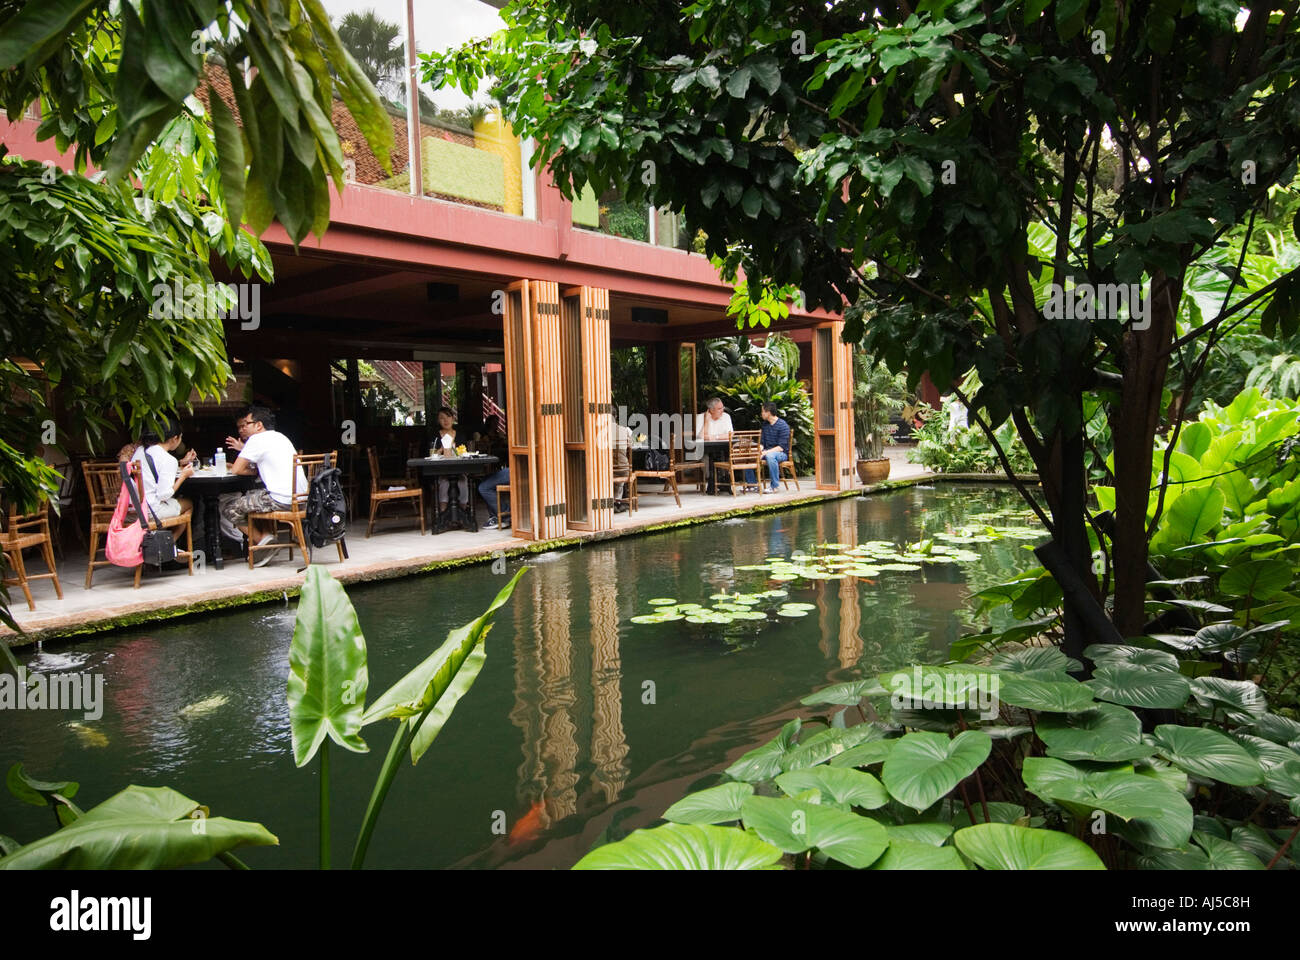 Restaurant at the jim thompson house bangkok thailand for The thompson house